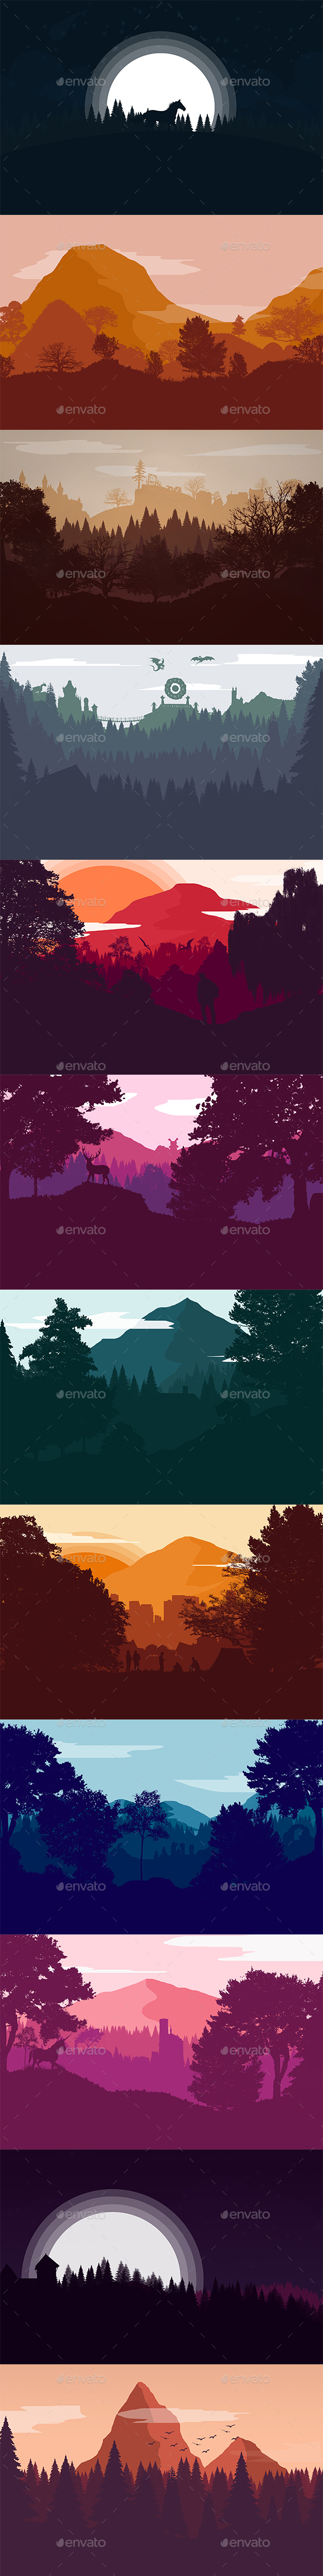 GraphicRiver Creative Landscape Backgrounds Vol2 20873456